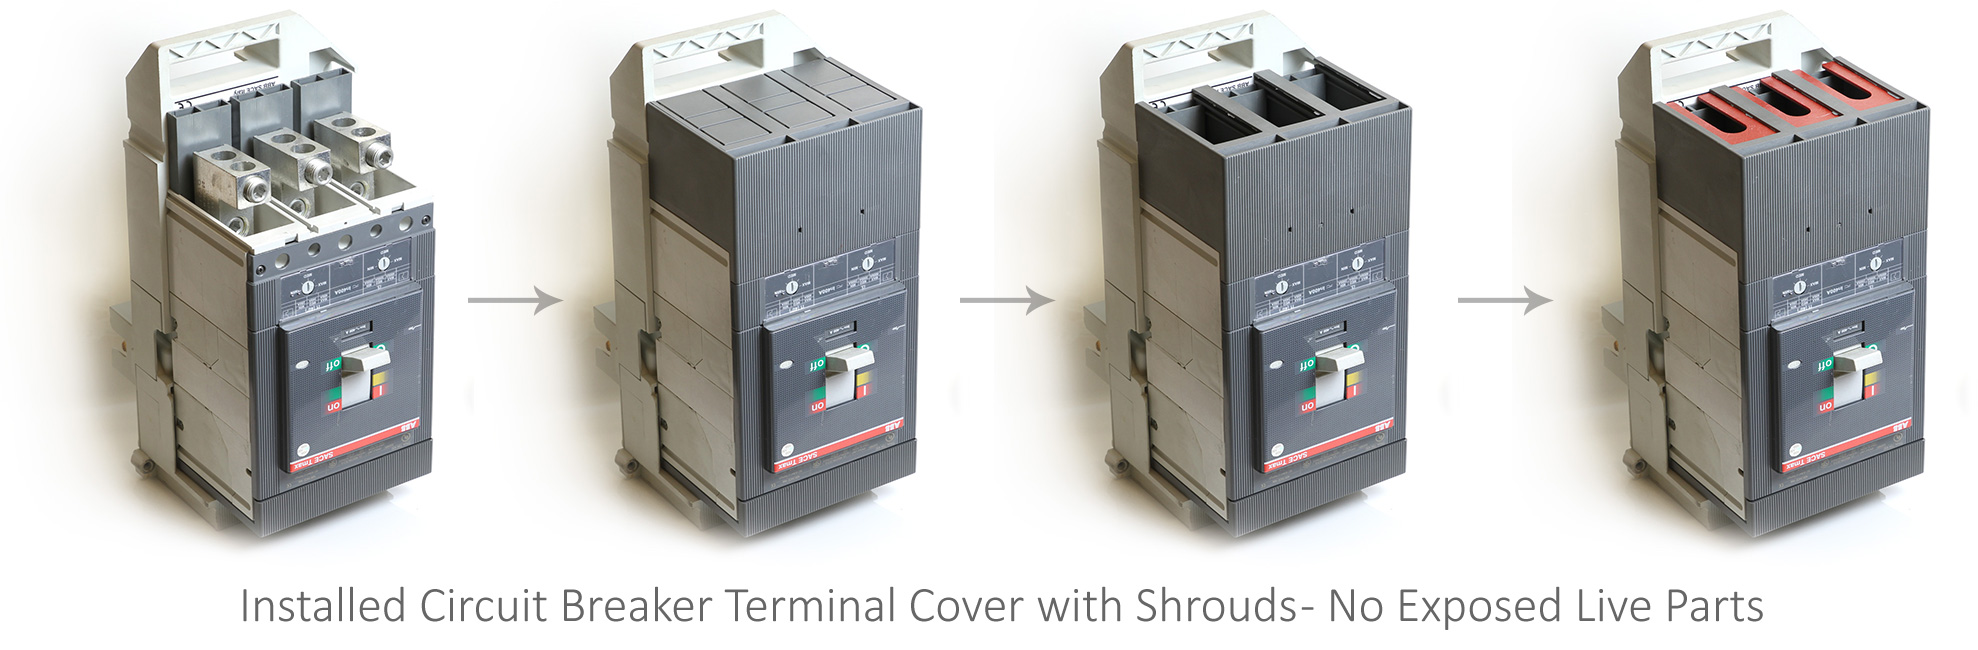 Terminal-Cover Installation Circuit Breaker